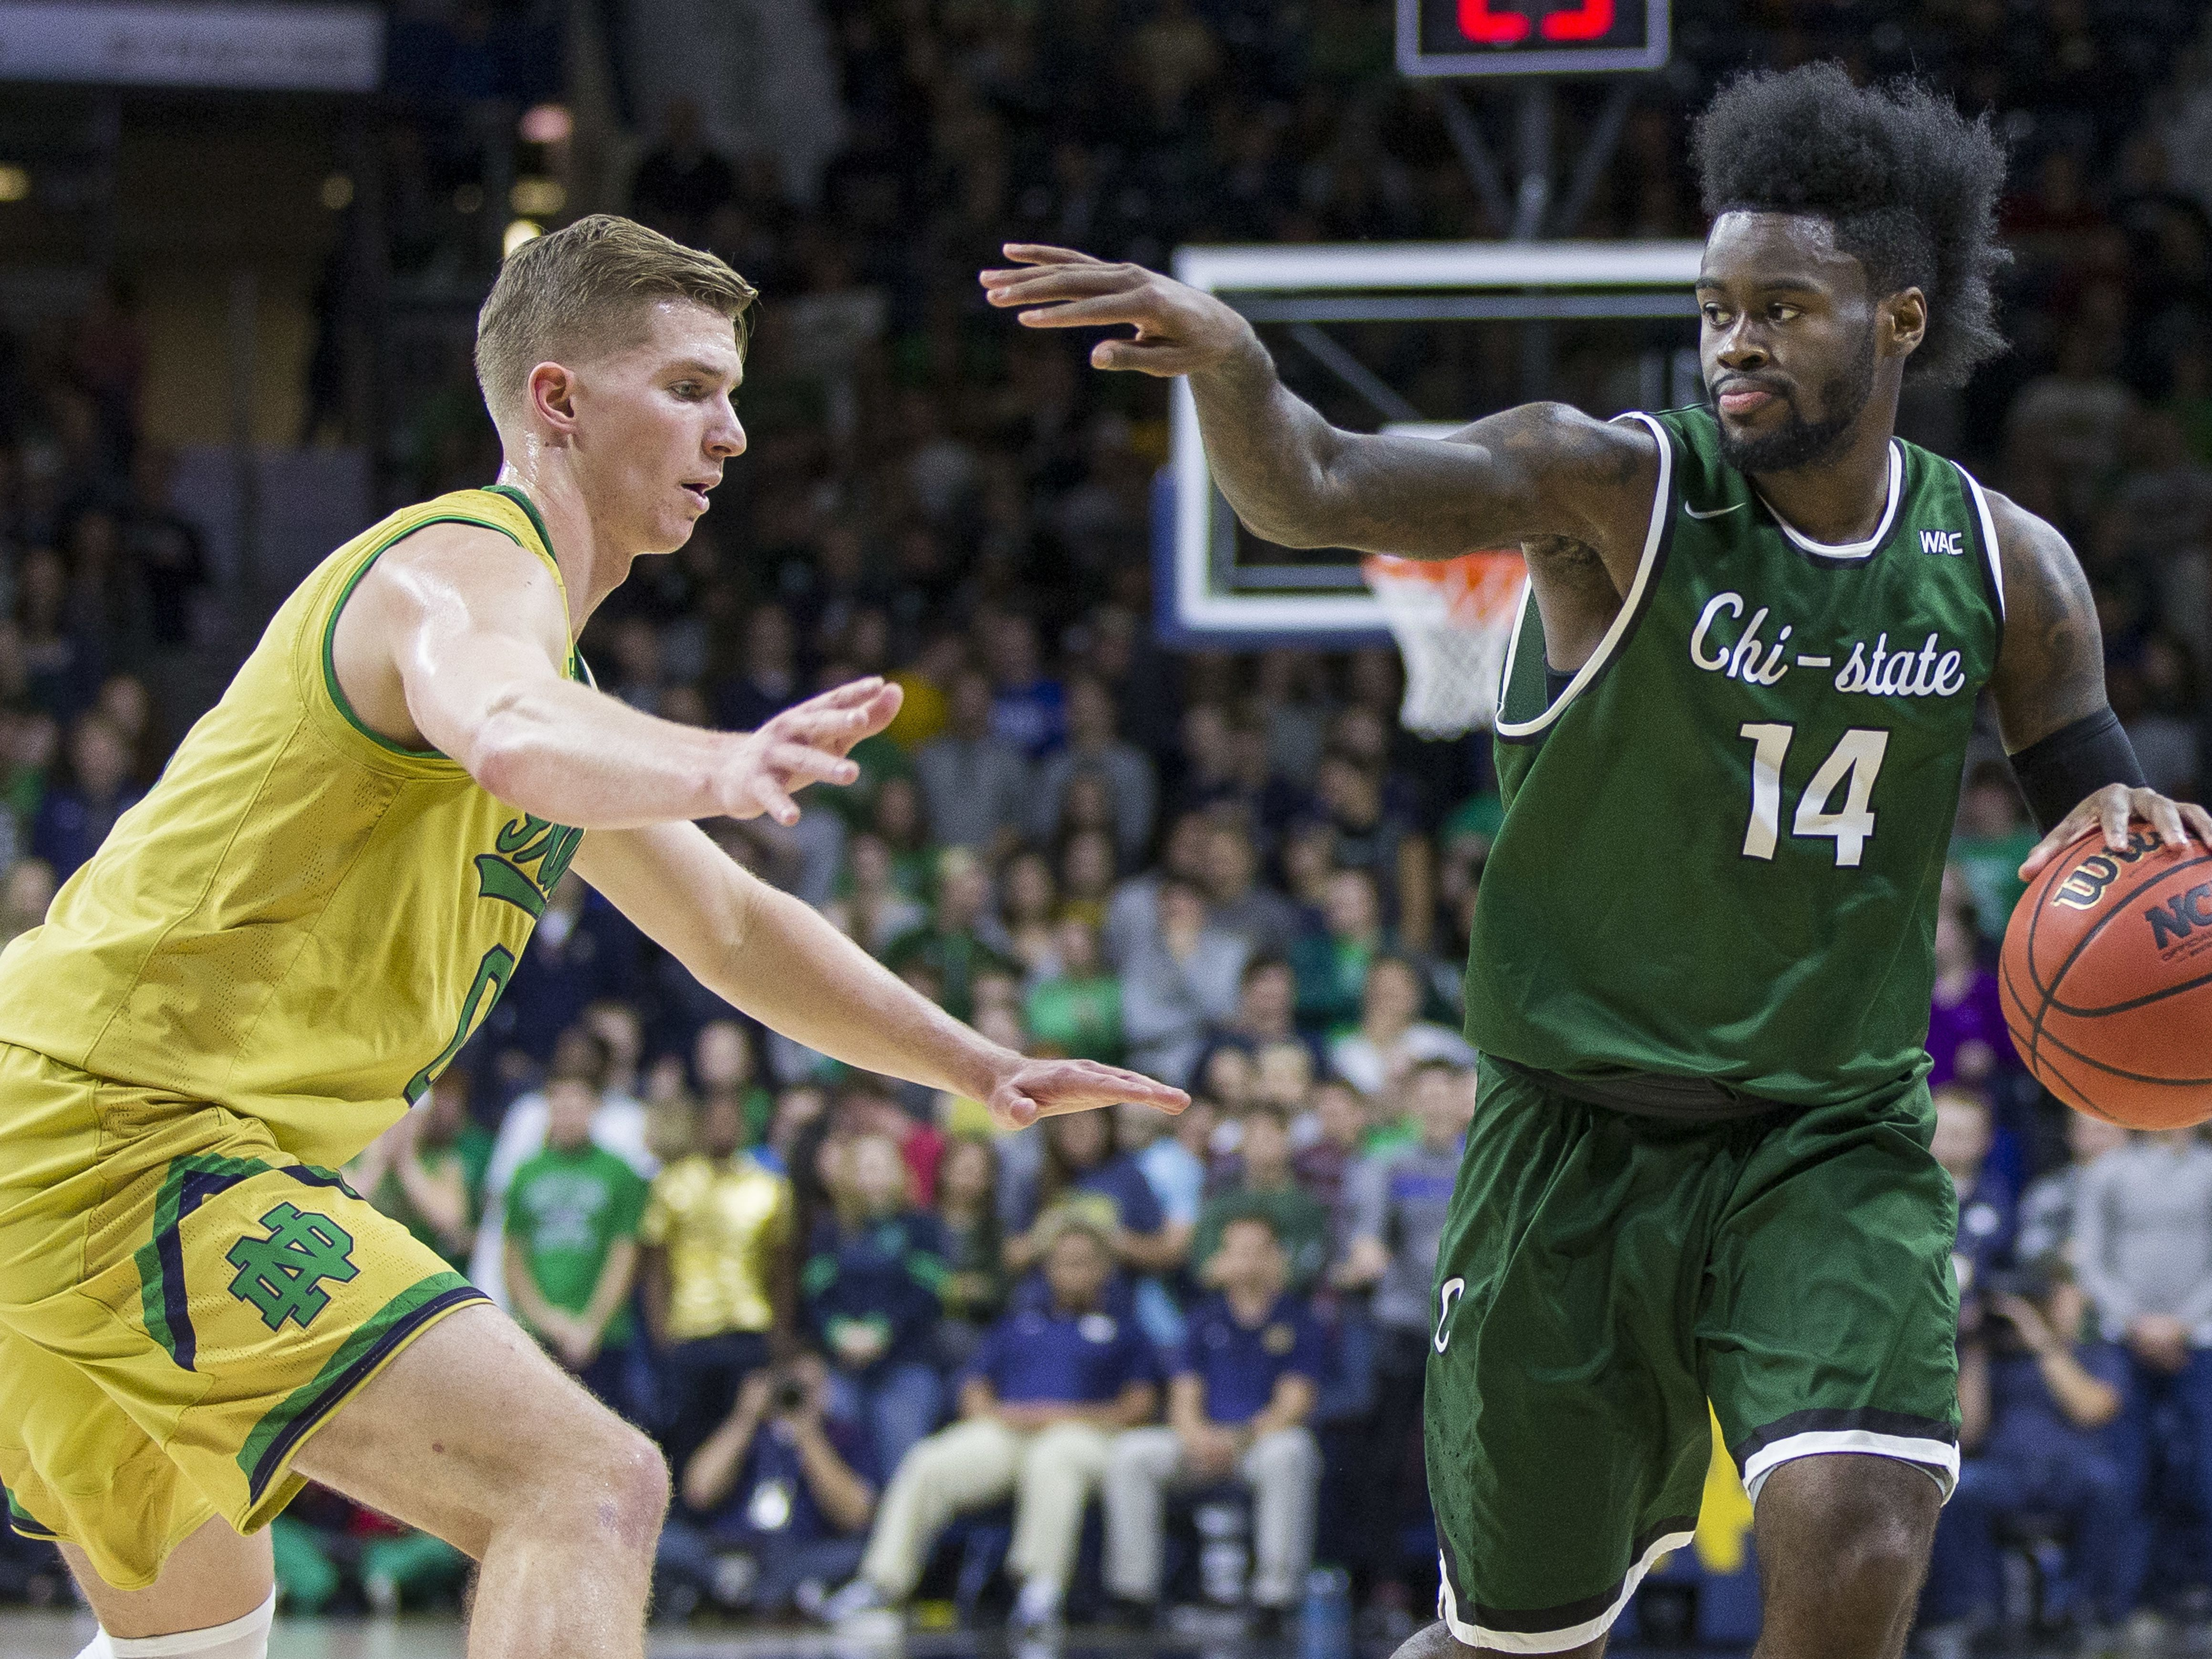 Chicago State's Fred Sims, Jr. (14) motions to a teammate as he moves by Notre Dame's Rex Pflueger (0) during the first half of an NCAA college basketball game Thursday, Nov. 16, 2017, in South Bend, Ind. (AP Photo/Robert Franklin)